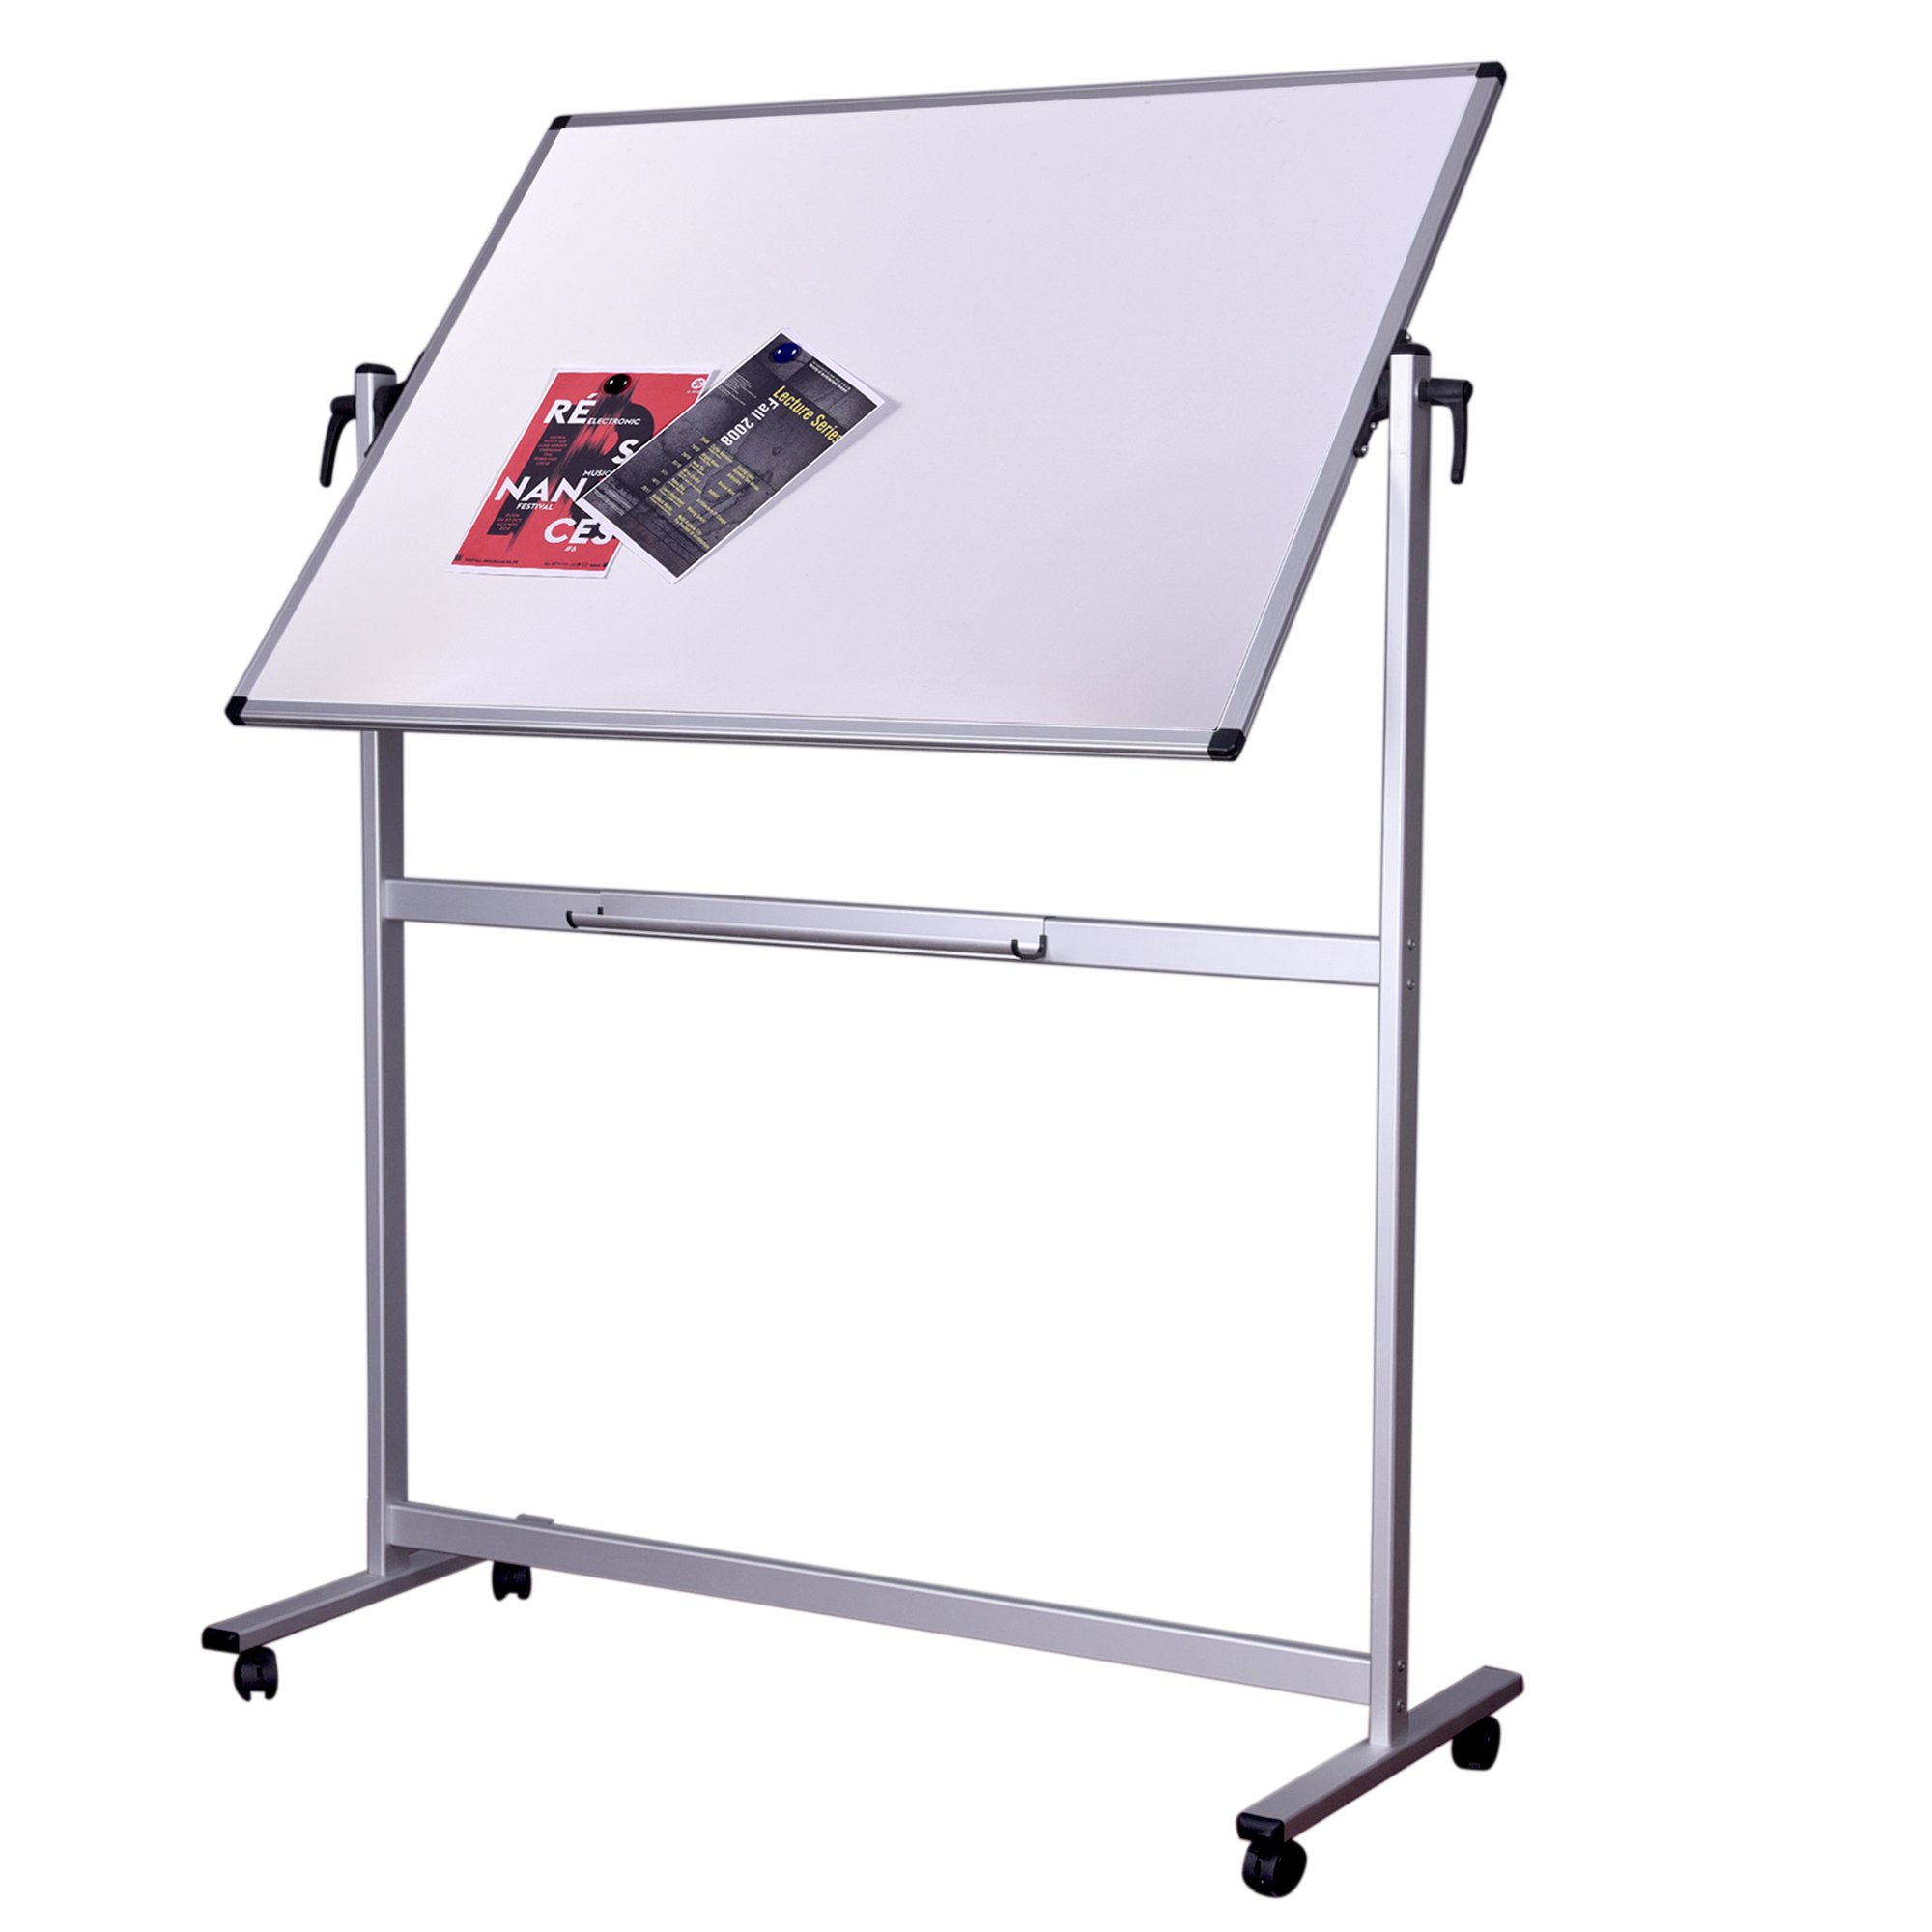 Dexboard 48 x 36 inch Double Sided Revolver Rolling Magnetic Dry Erase Board Easel, Mobile & Reversible Presentation White Writing Board on Aluminum Stand Wheels